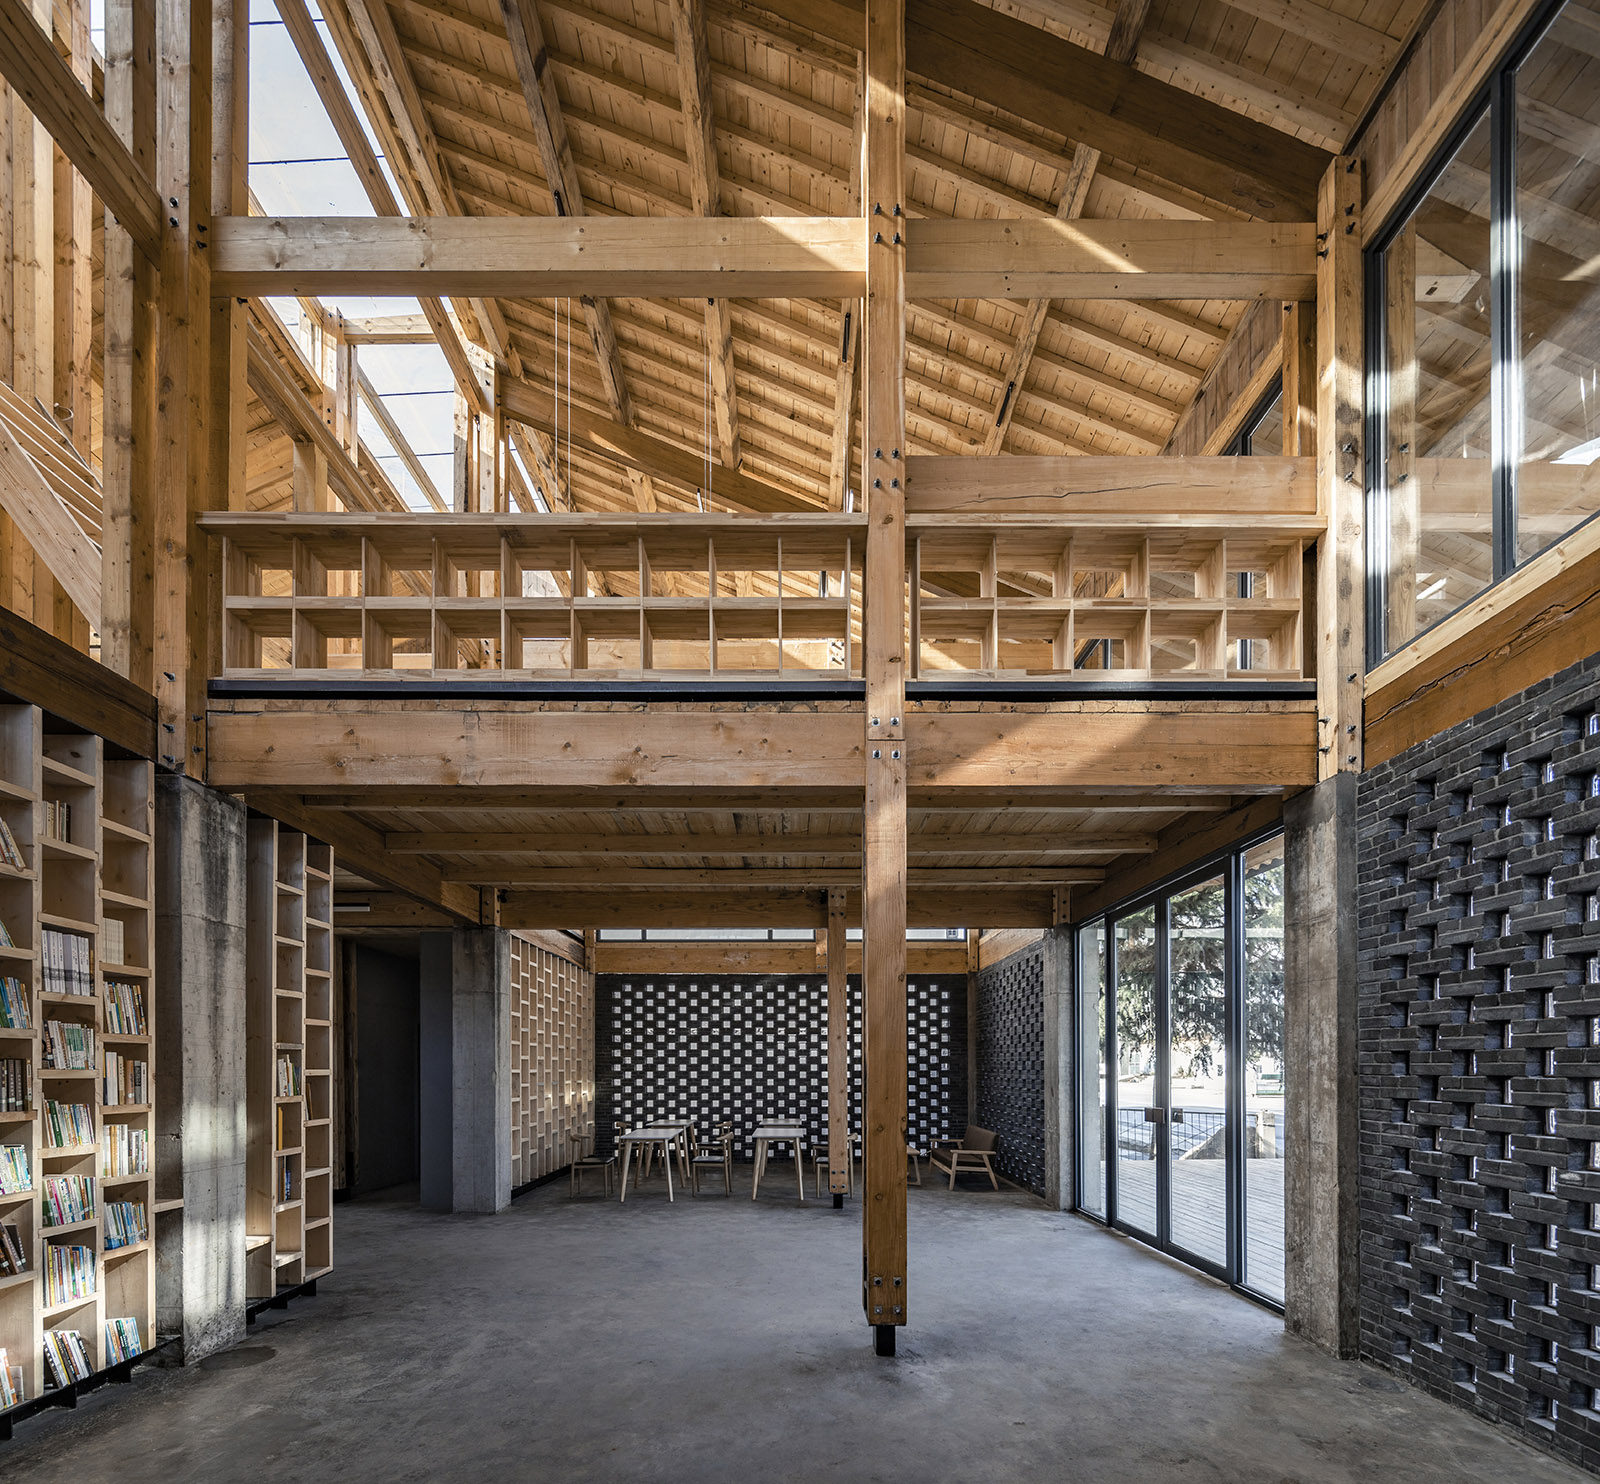 The party and public service center of Yuanheguan Village in Hubei Province, China, by LUO Studio